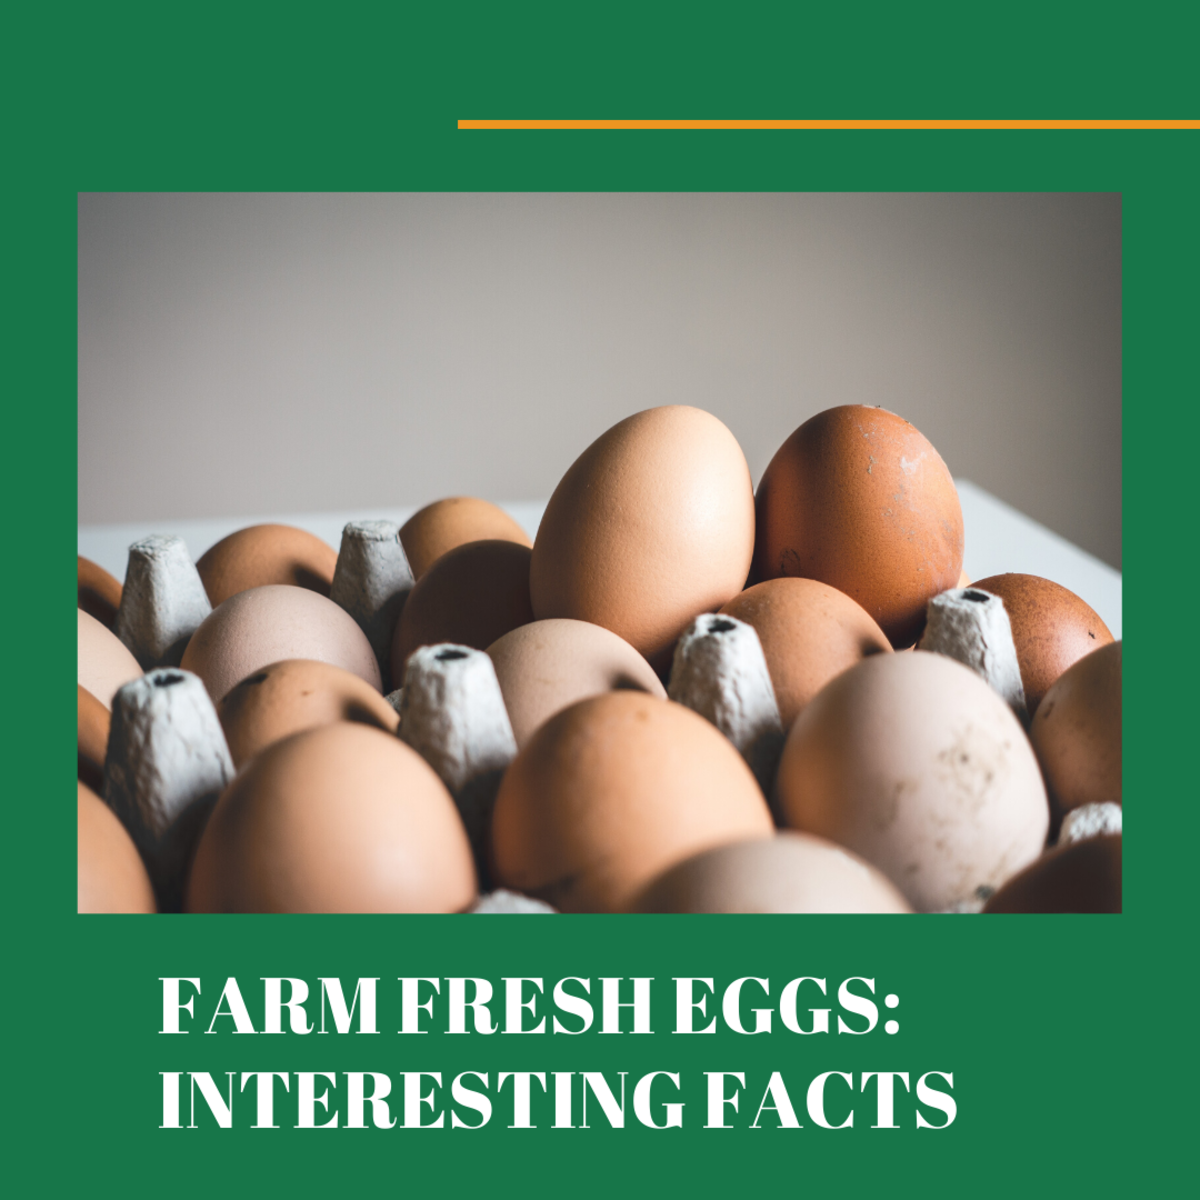 Here's everything you didn't know about farm fresh eggs.